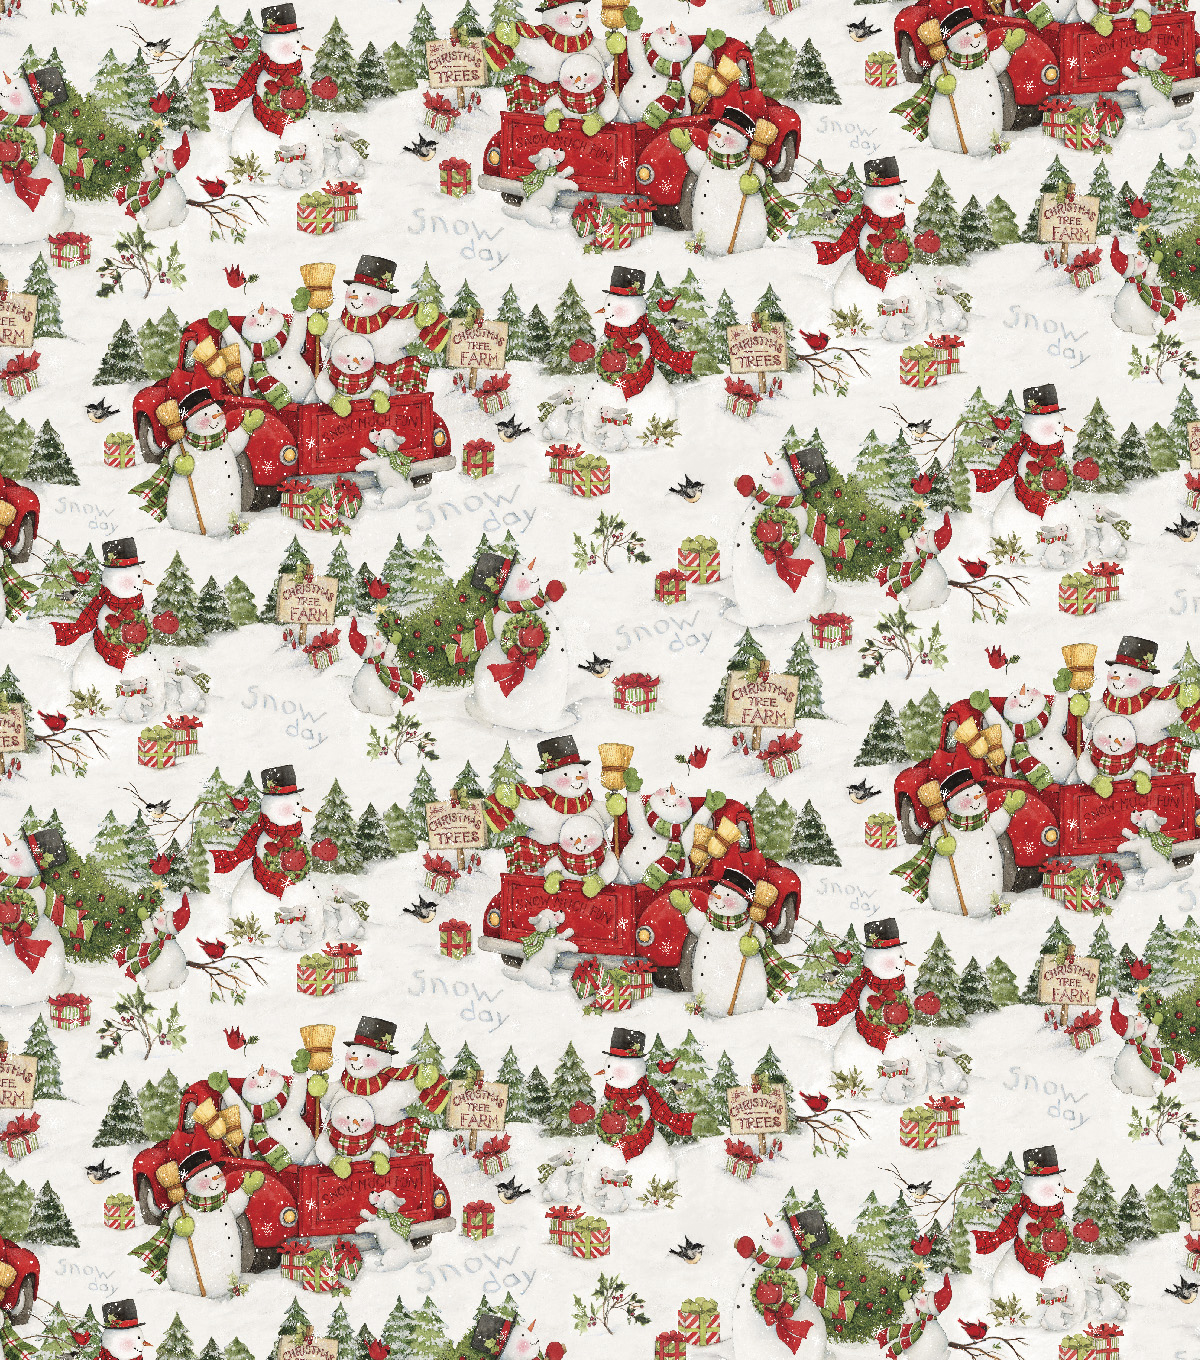 Christmas Cotton Fabric-Scenic & Snowmen on Trucks | JOANN